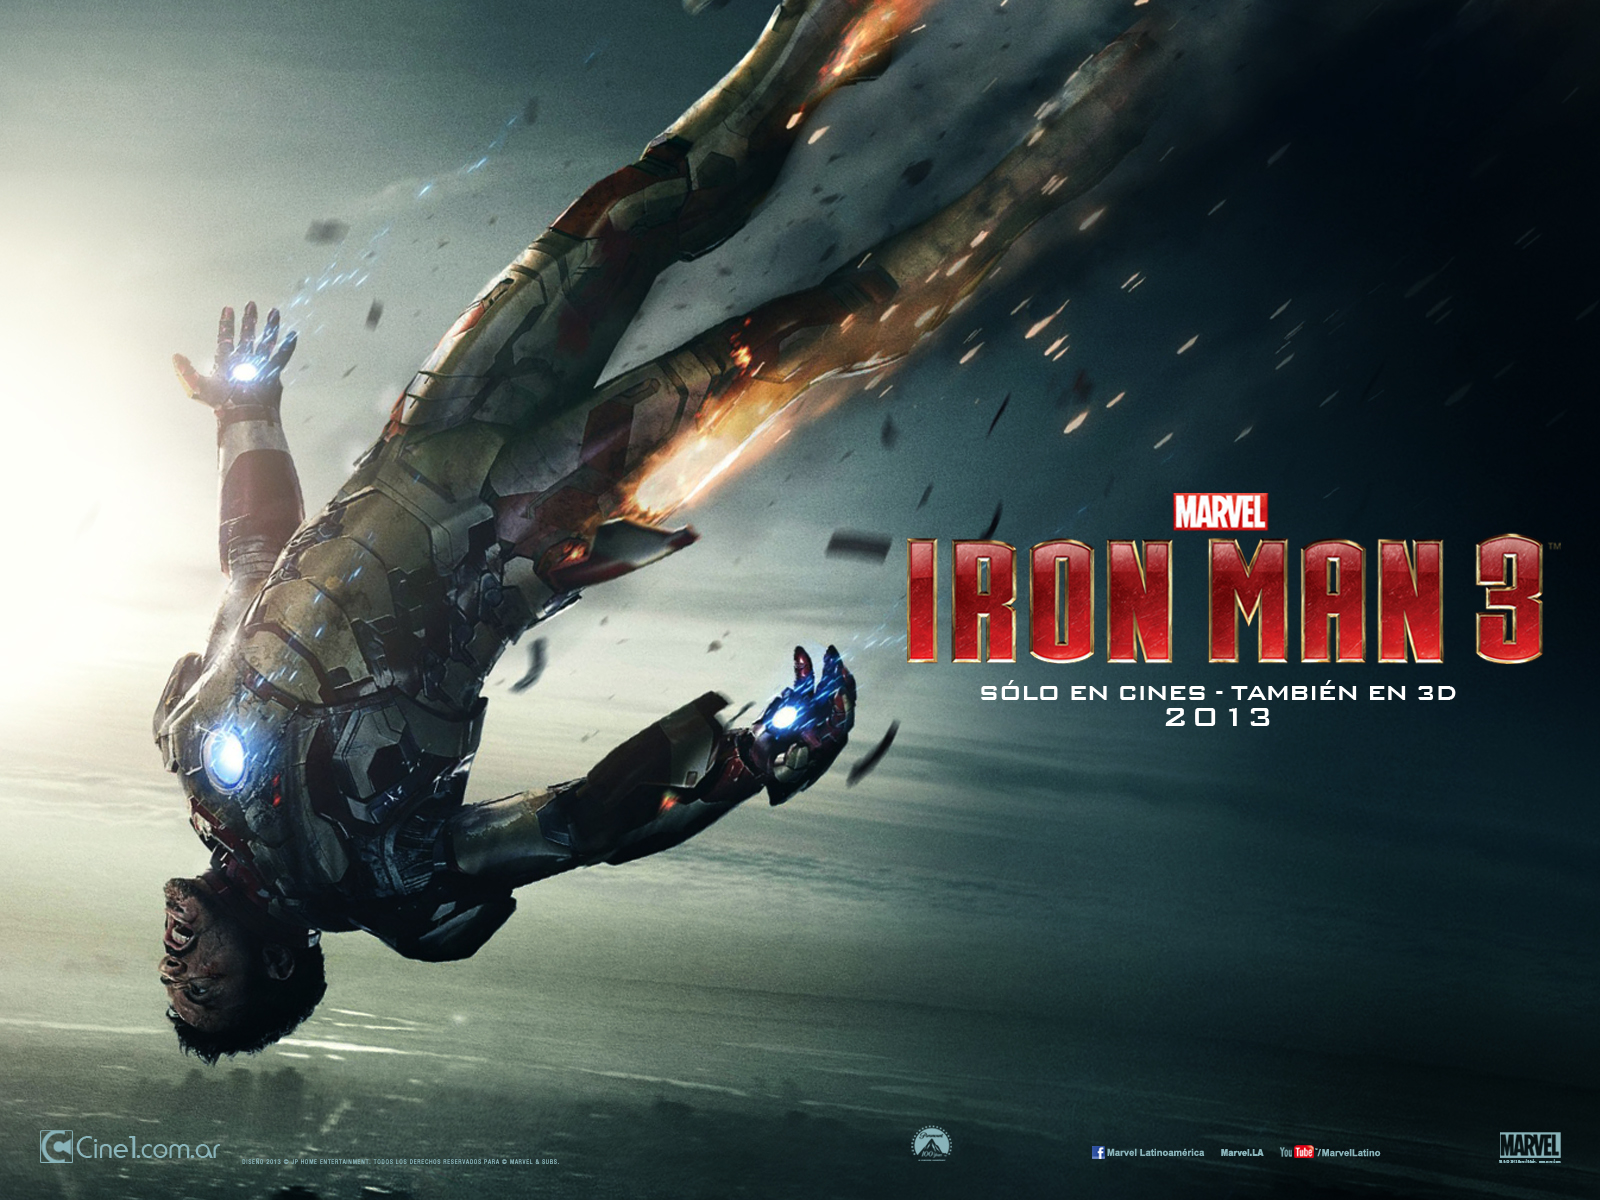 Free Download Hd Wallpapers Iron Man 3 Wallpapers 1600x1200 For